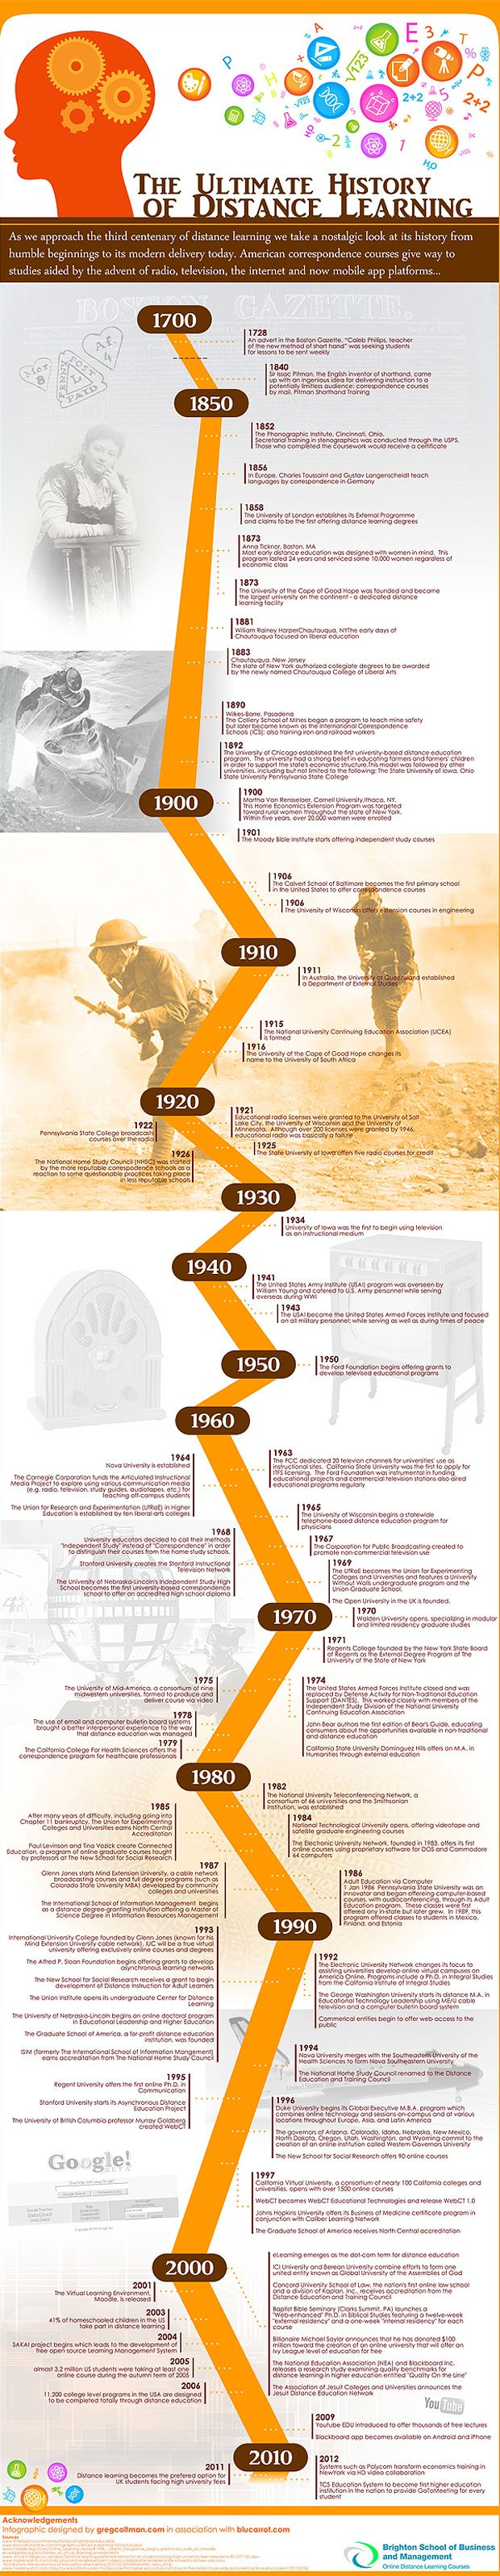 The history of distance learning [Infographic]